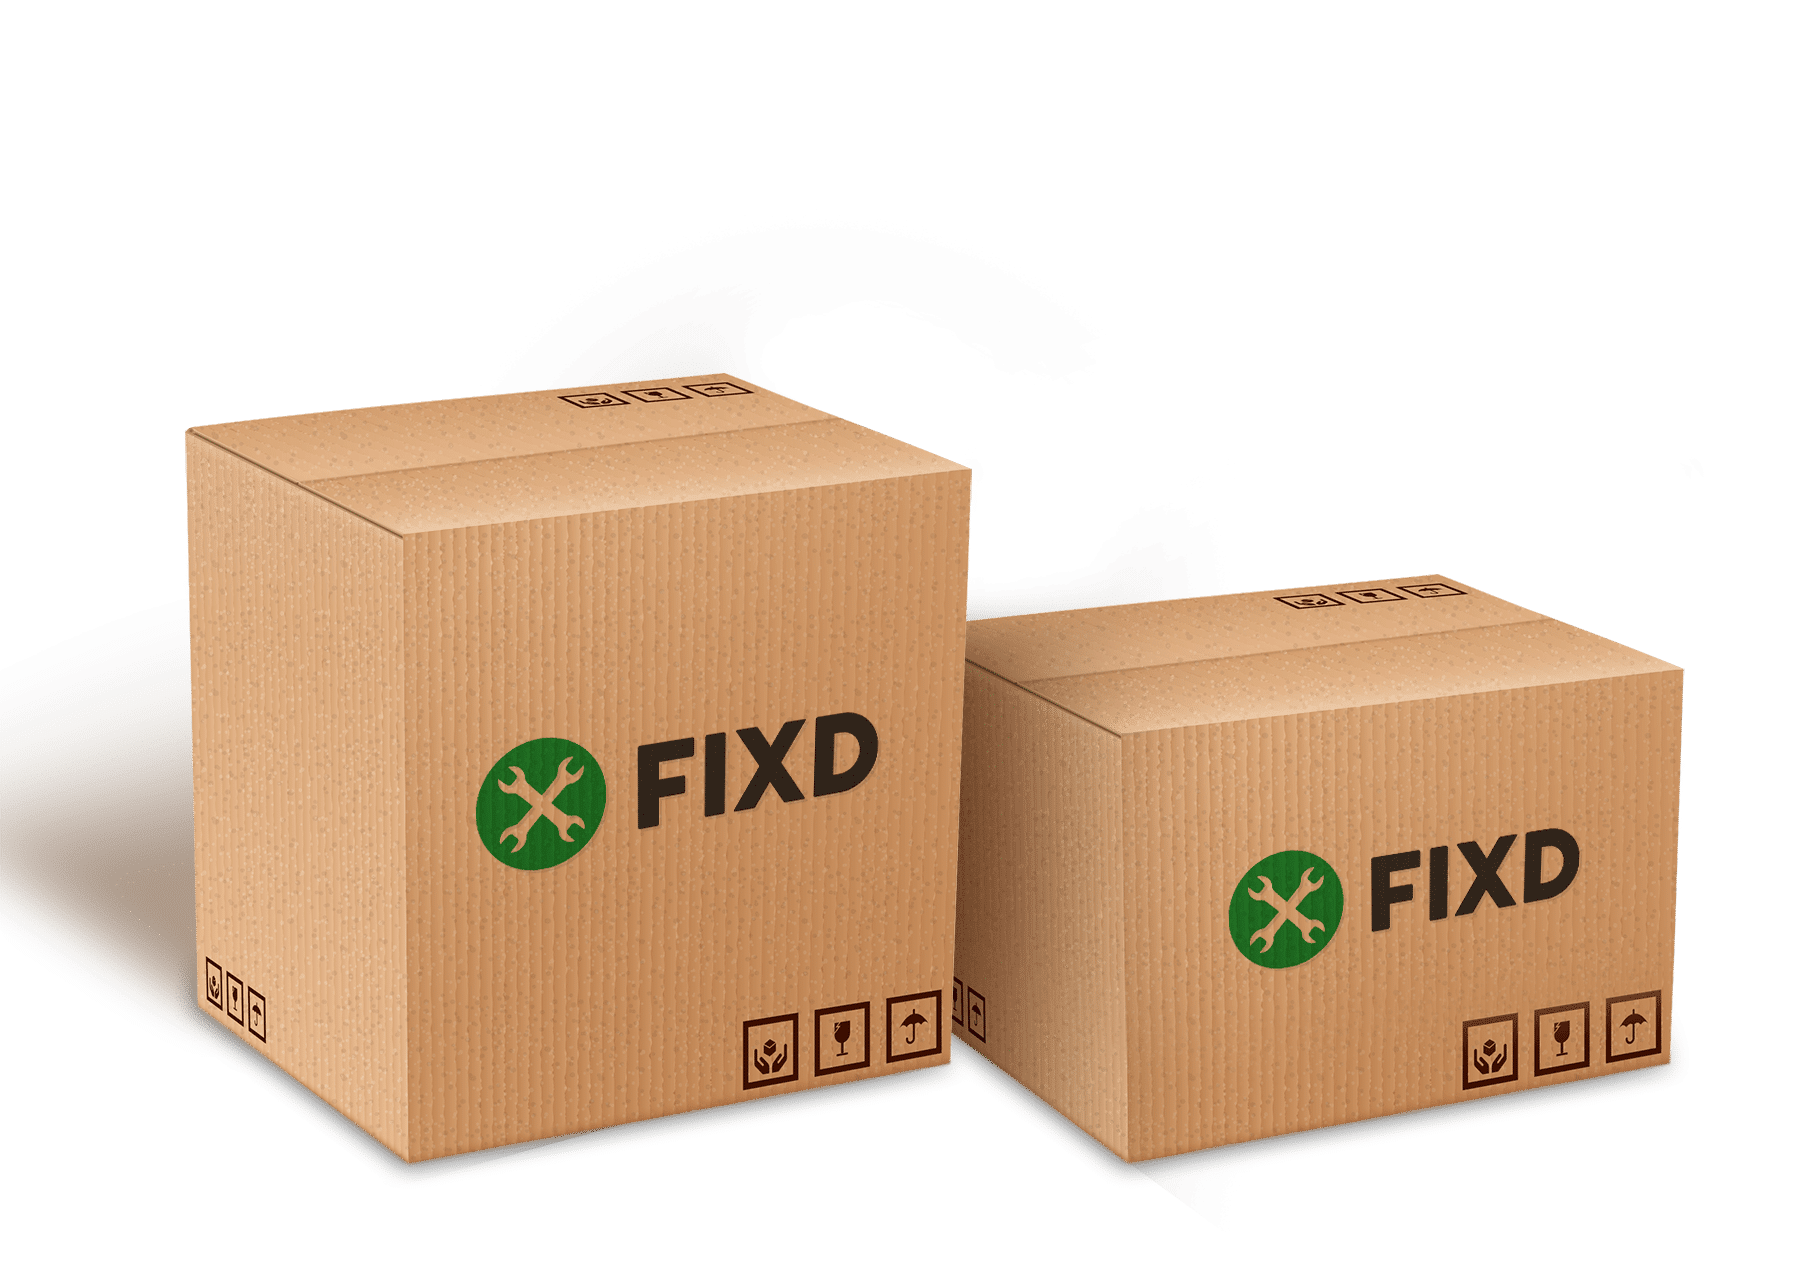 FIXD shipping boxes